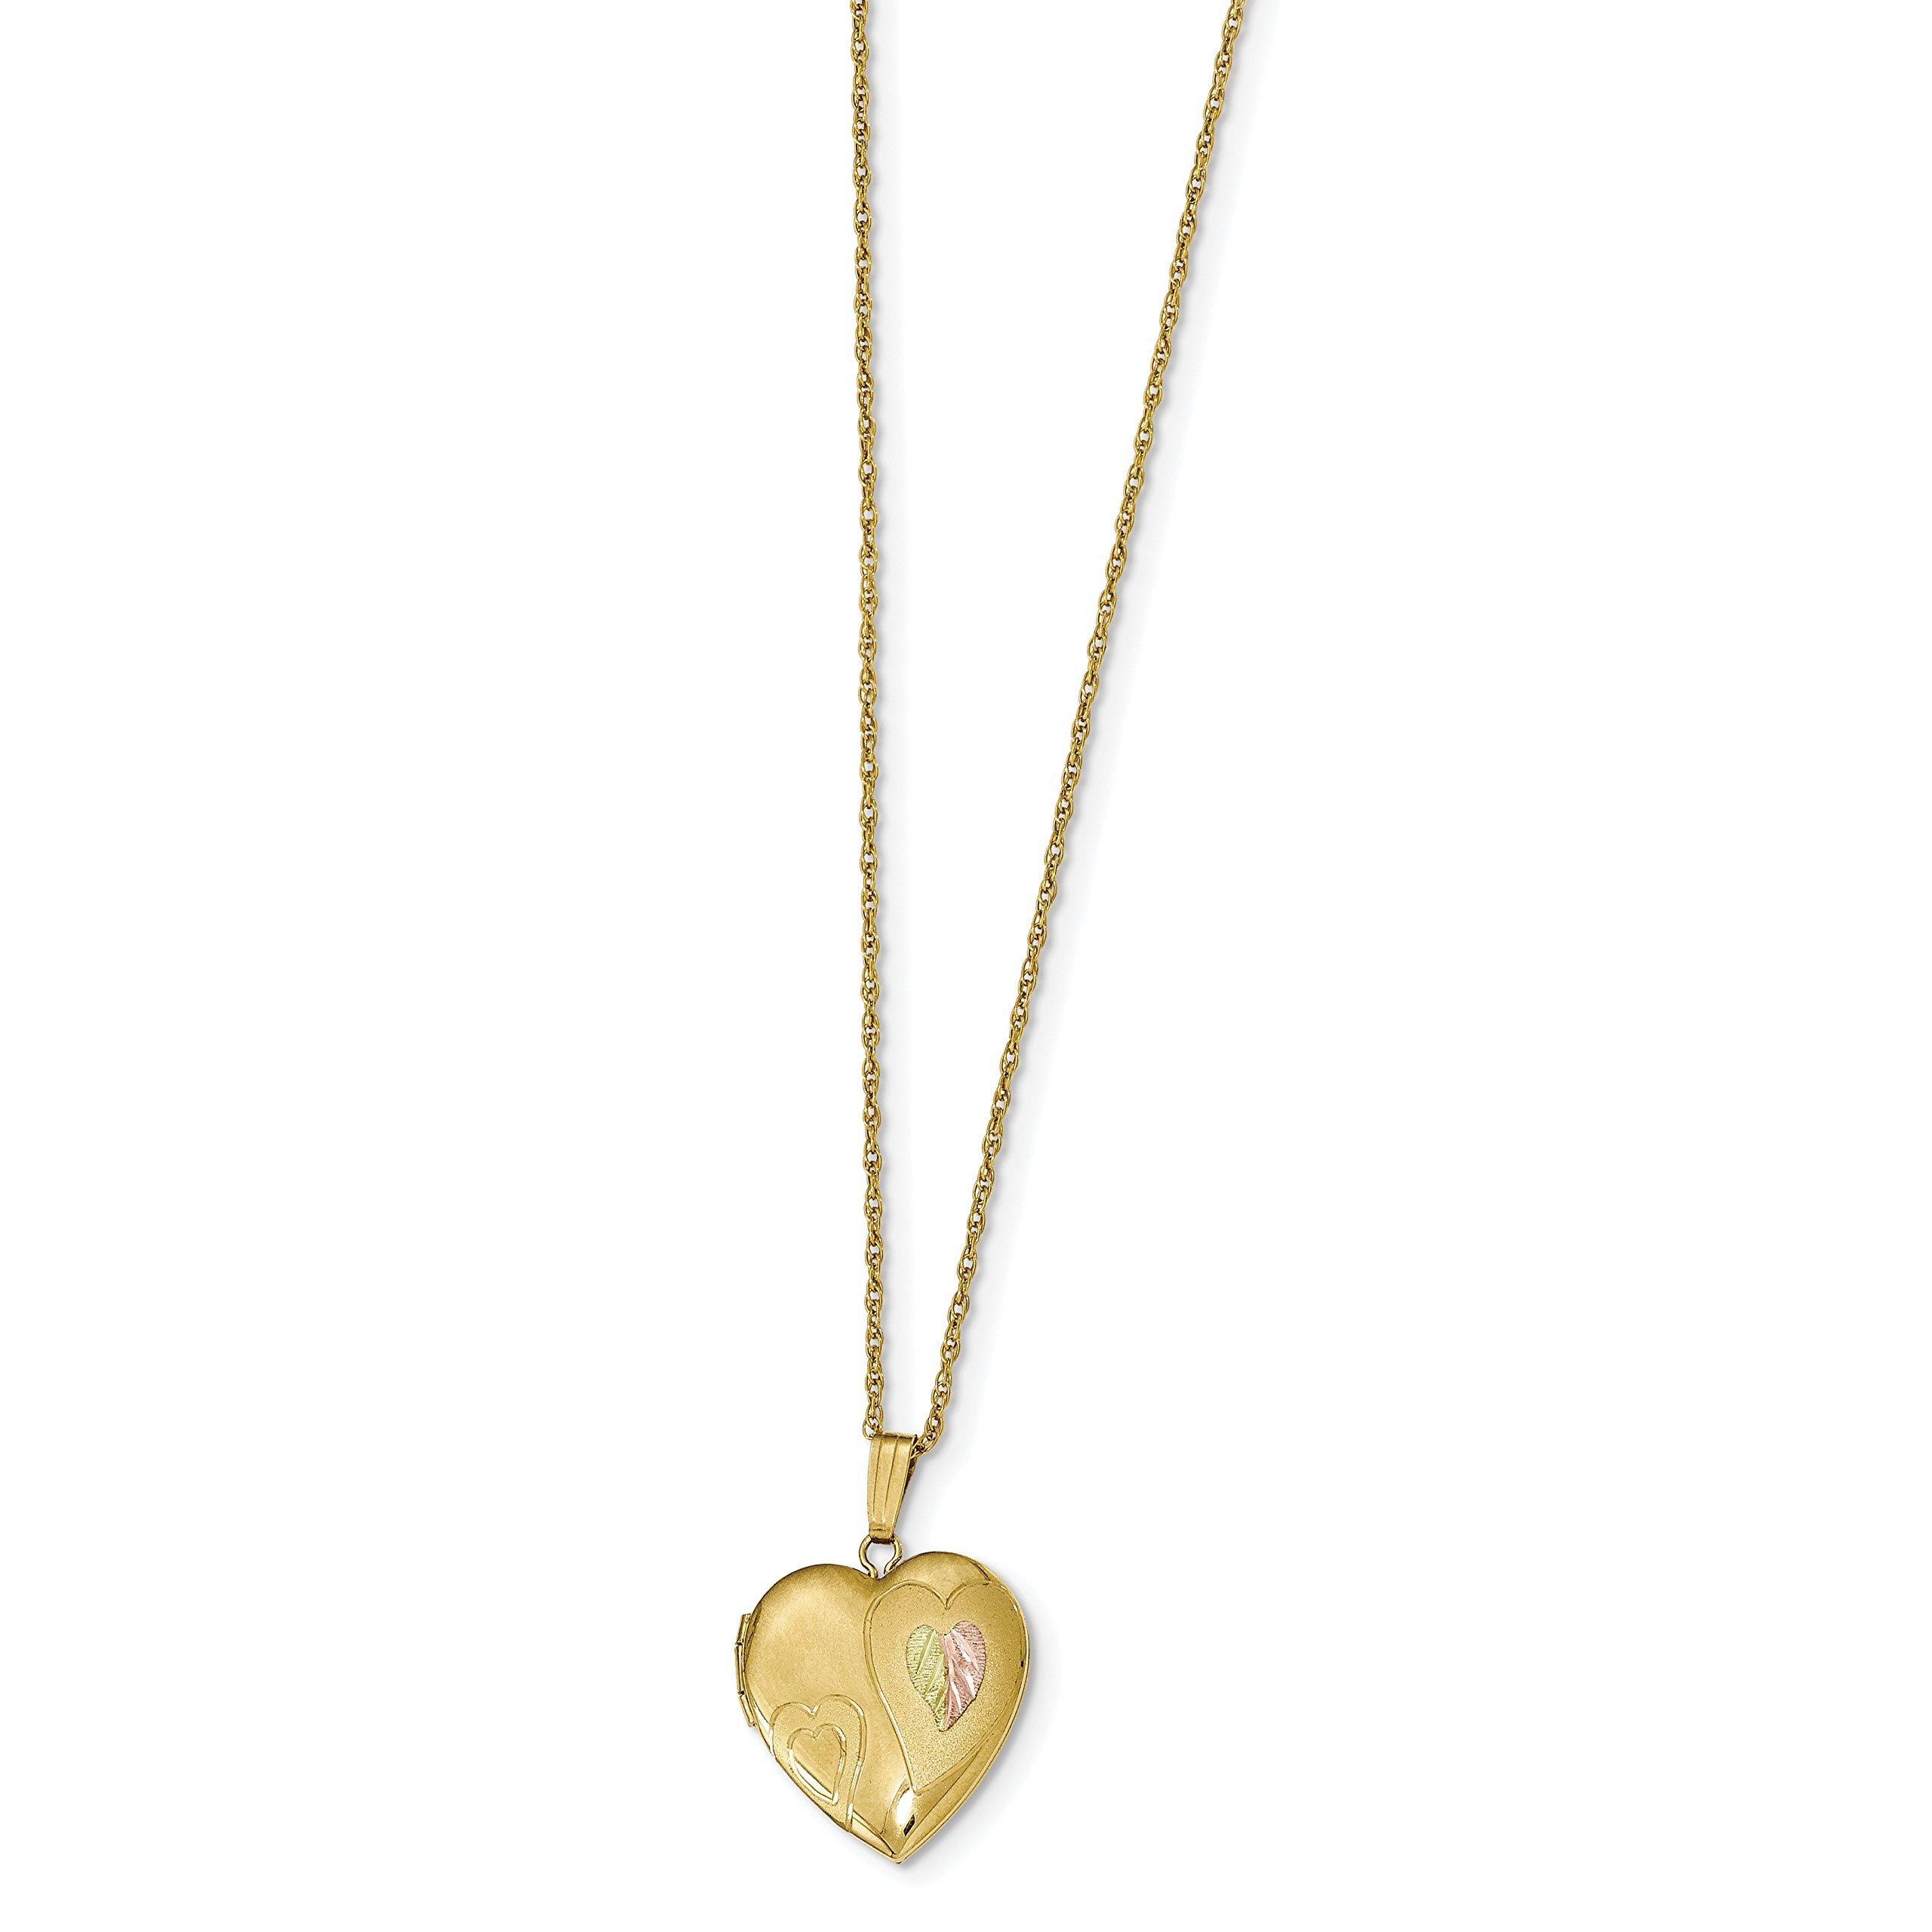 ICE CARATS 14k Yellow Gold Filled 12k Accents Black Hills Photo Pendant Charm Locket Chain Necklace That Holds Pictures Hill Fine Jewelry Gift Set For Women Heart